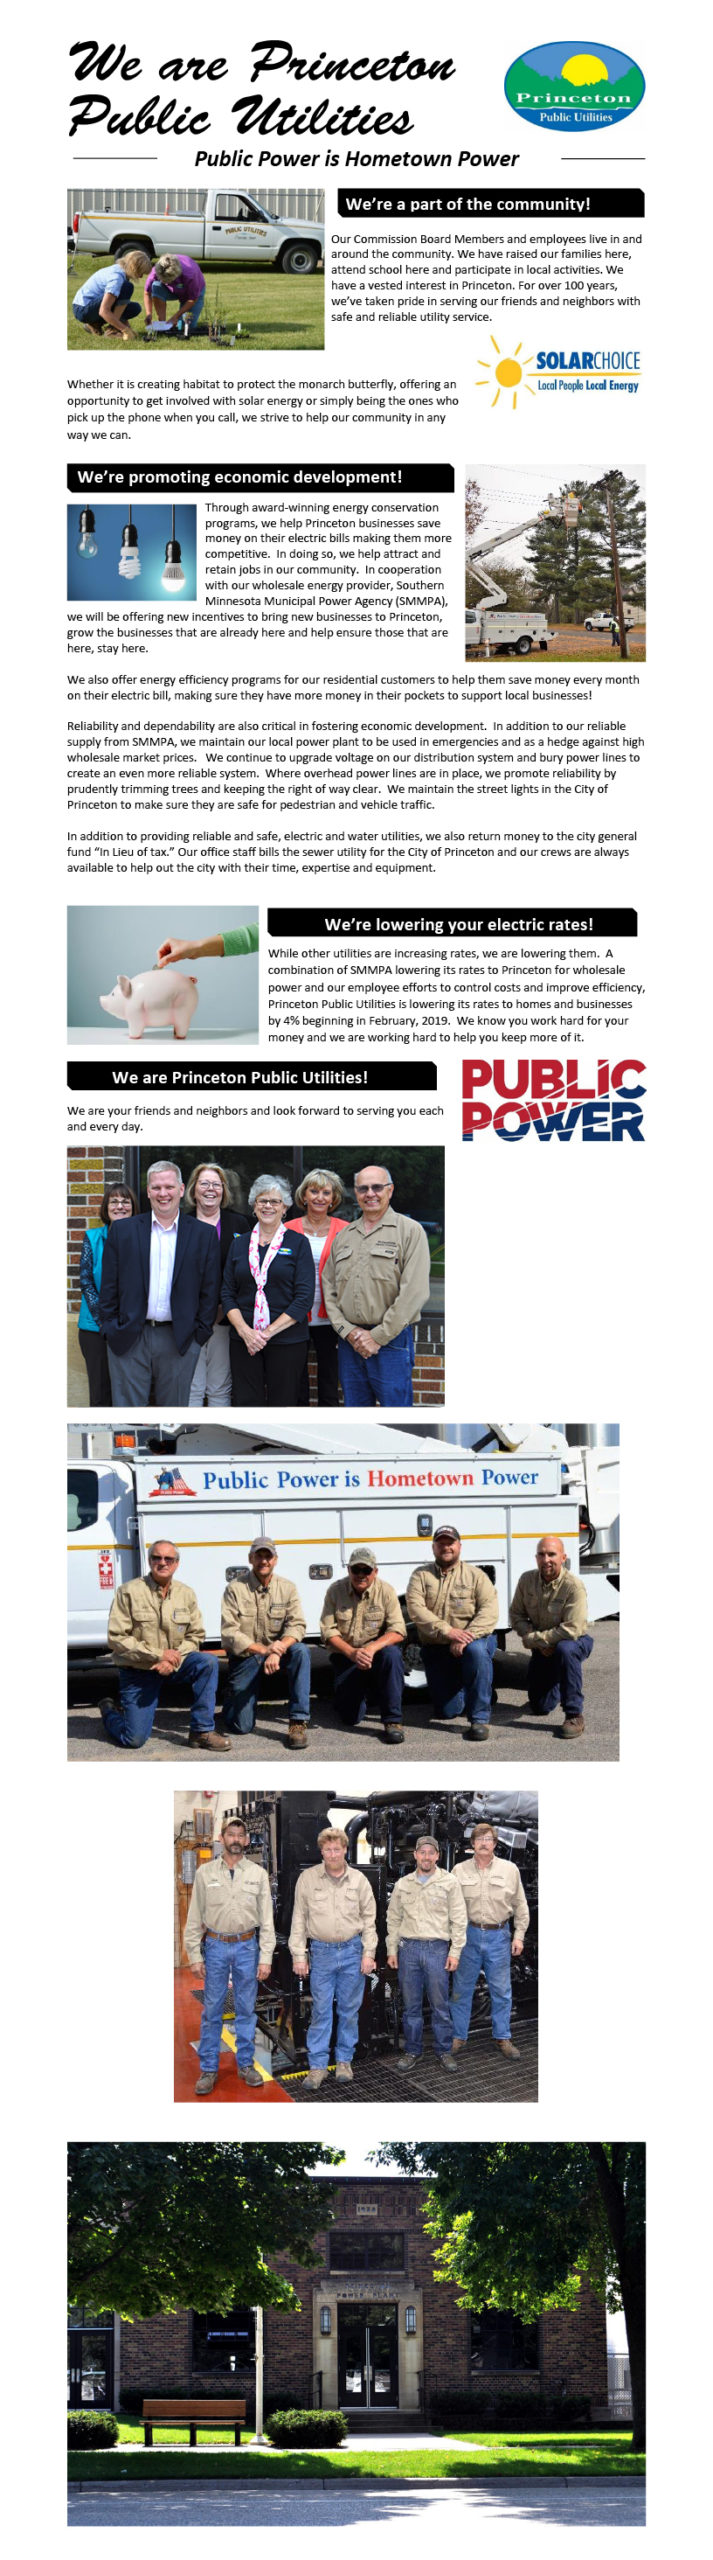 We Are Princeton Public Utilities